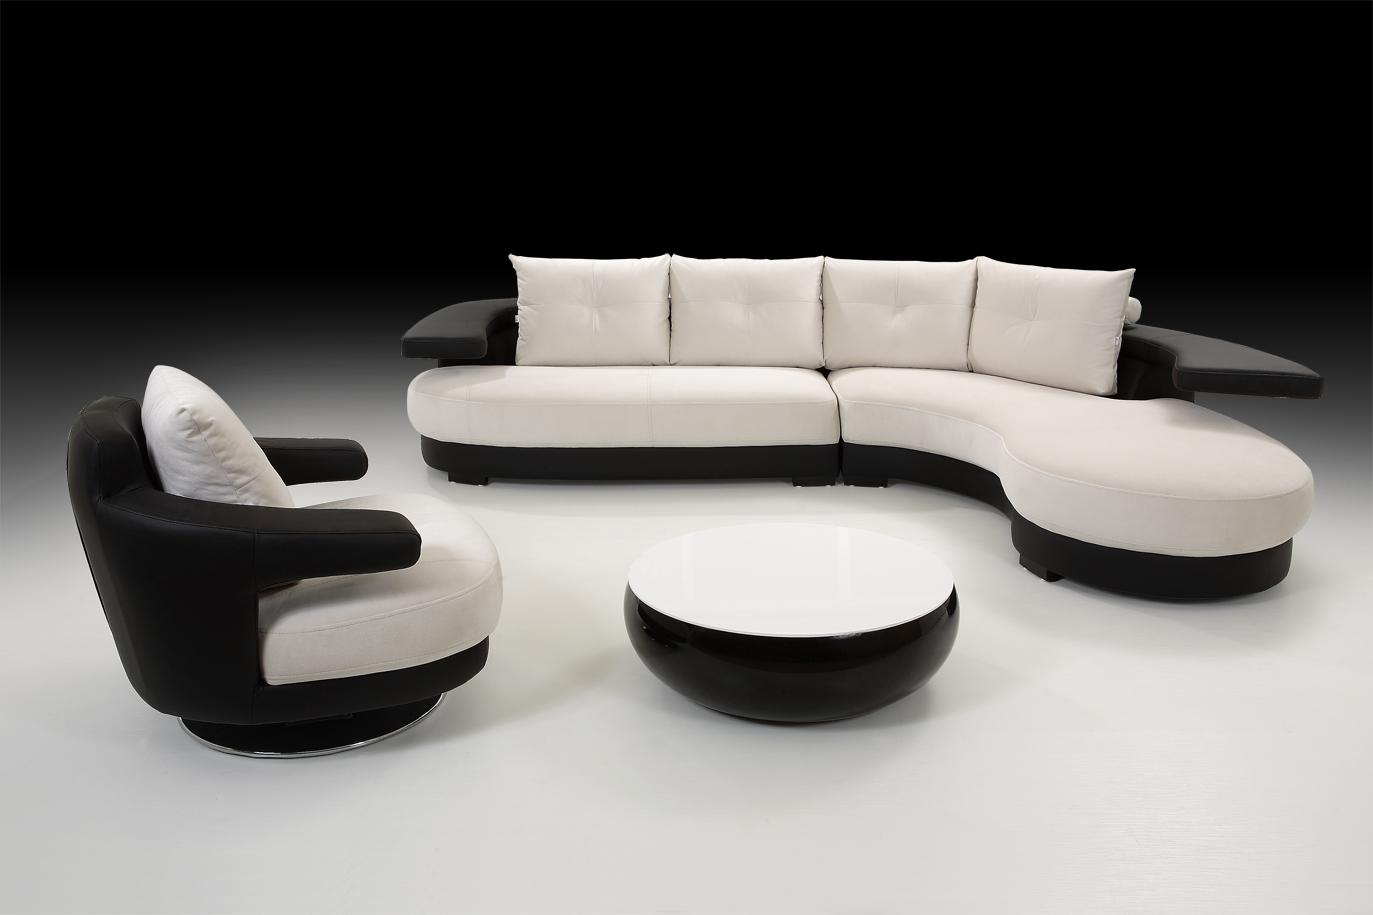 Various Kinds Of Black And White Sofa To Consider Getting : S3Net With White And Black Sofas (Image 21 of 21)